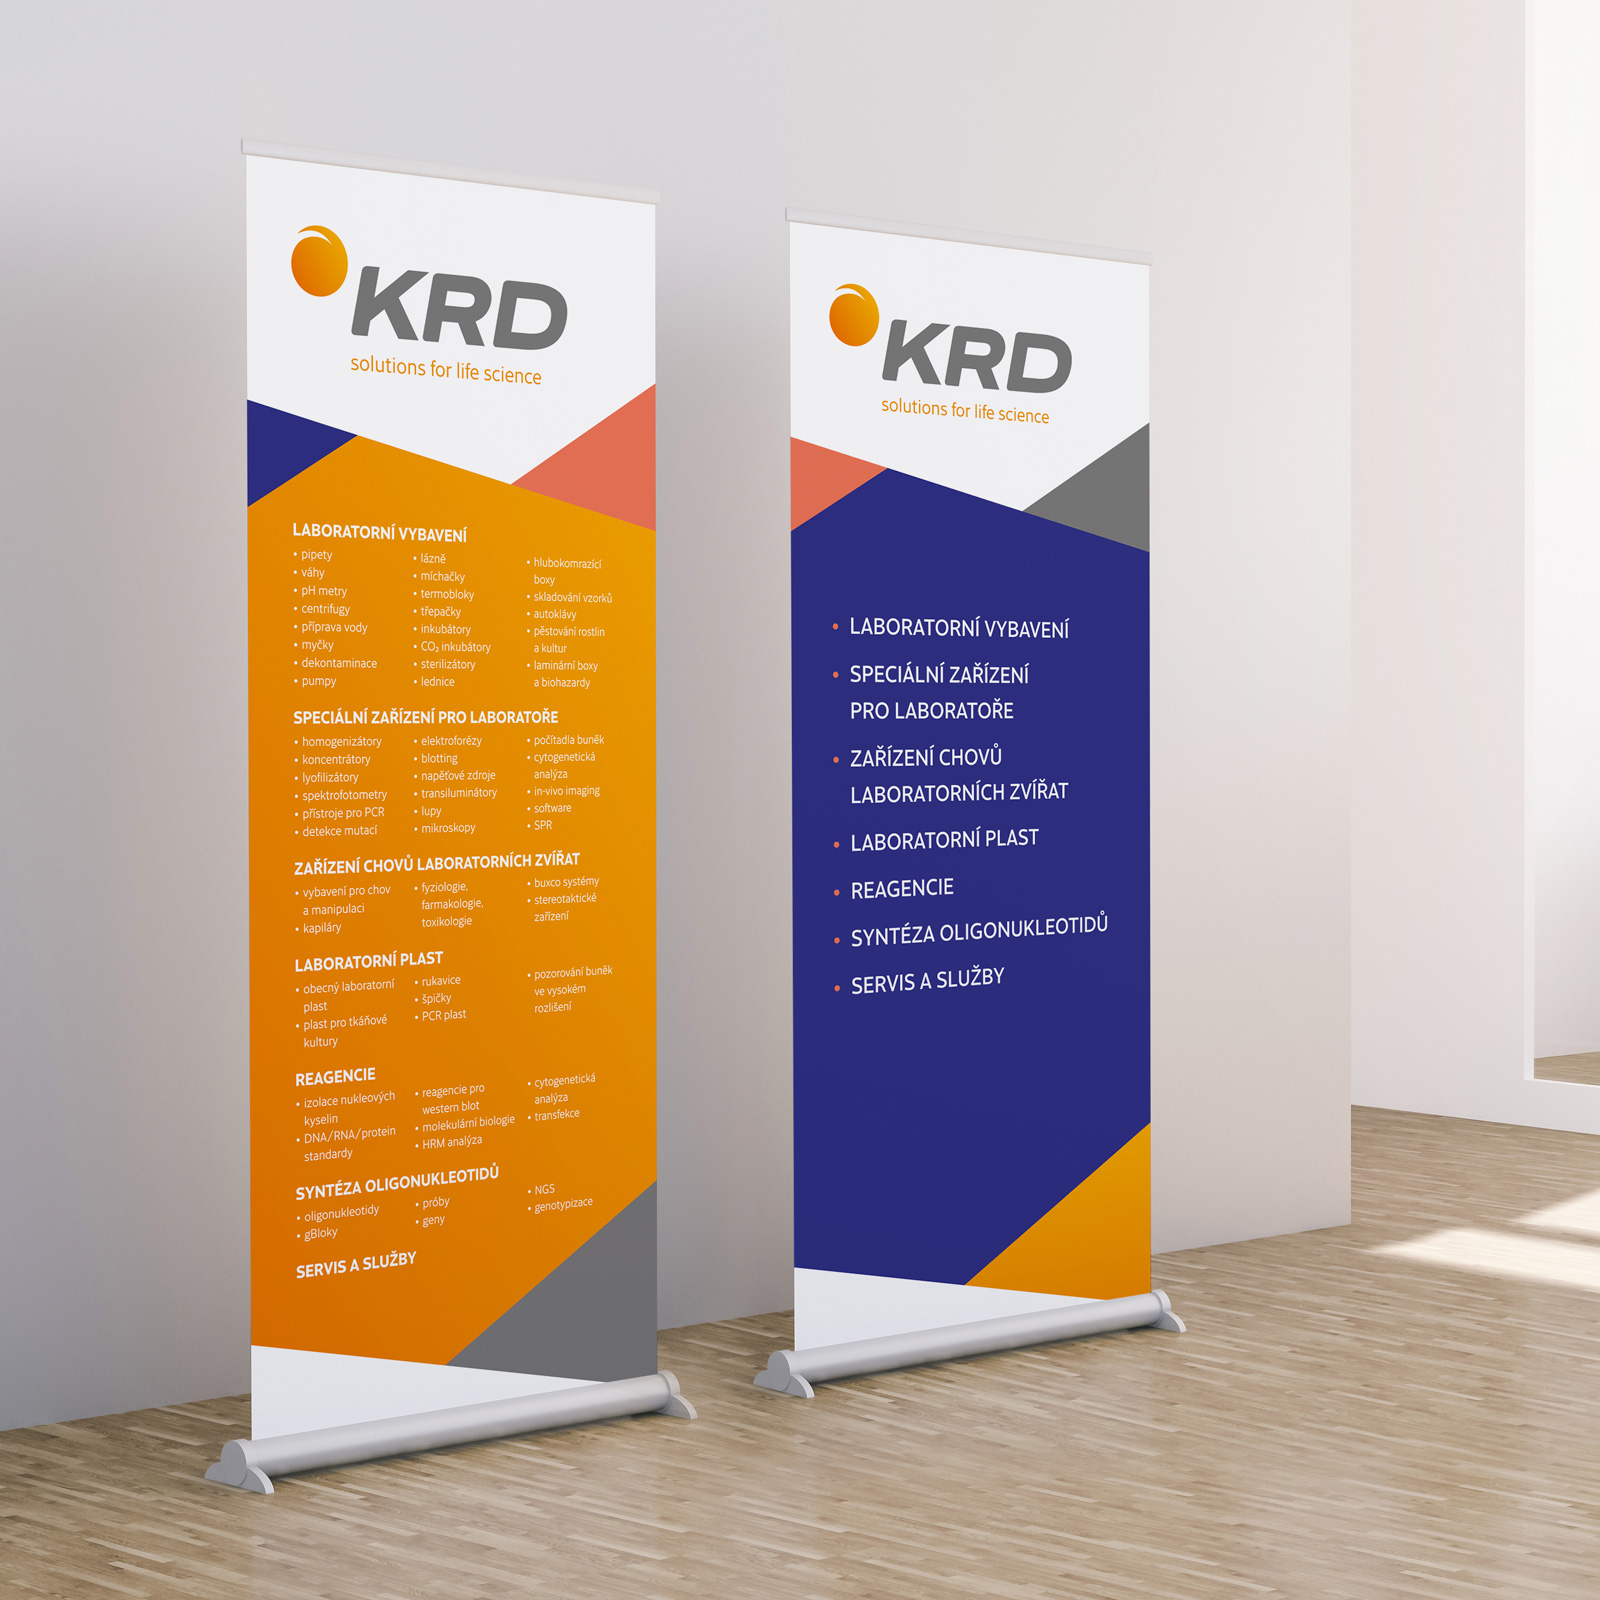 [album/Products_Model_Product/43/KRD_mock-up_roll-up_dvojice_ctverec.jpg]